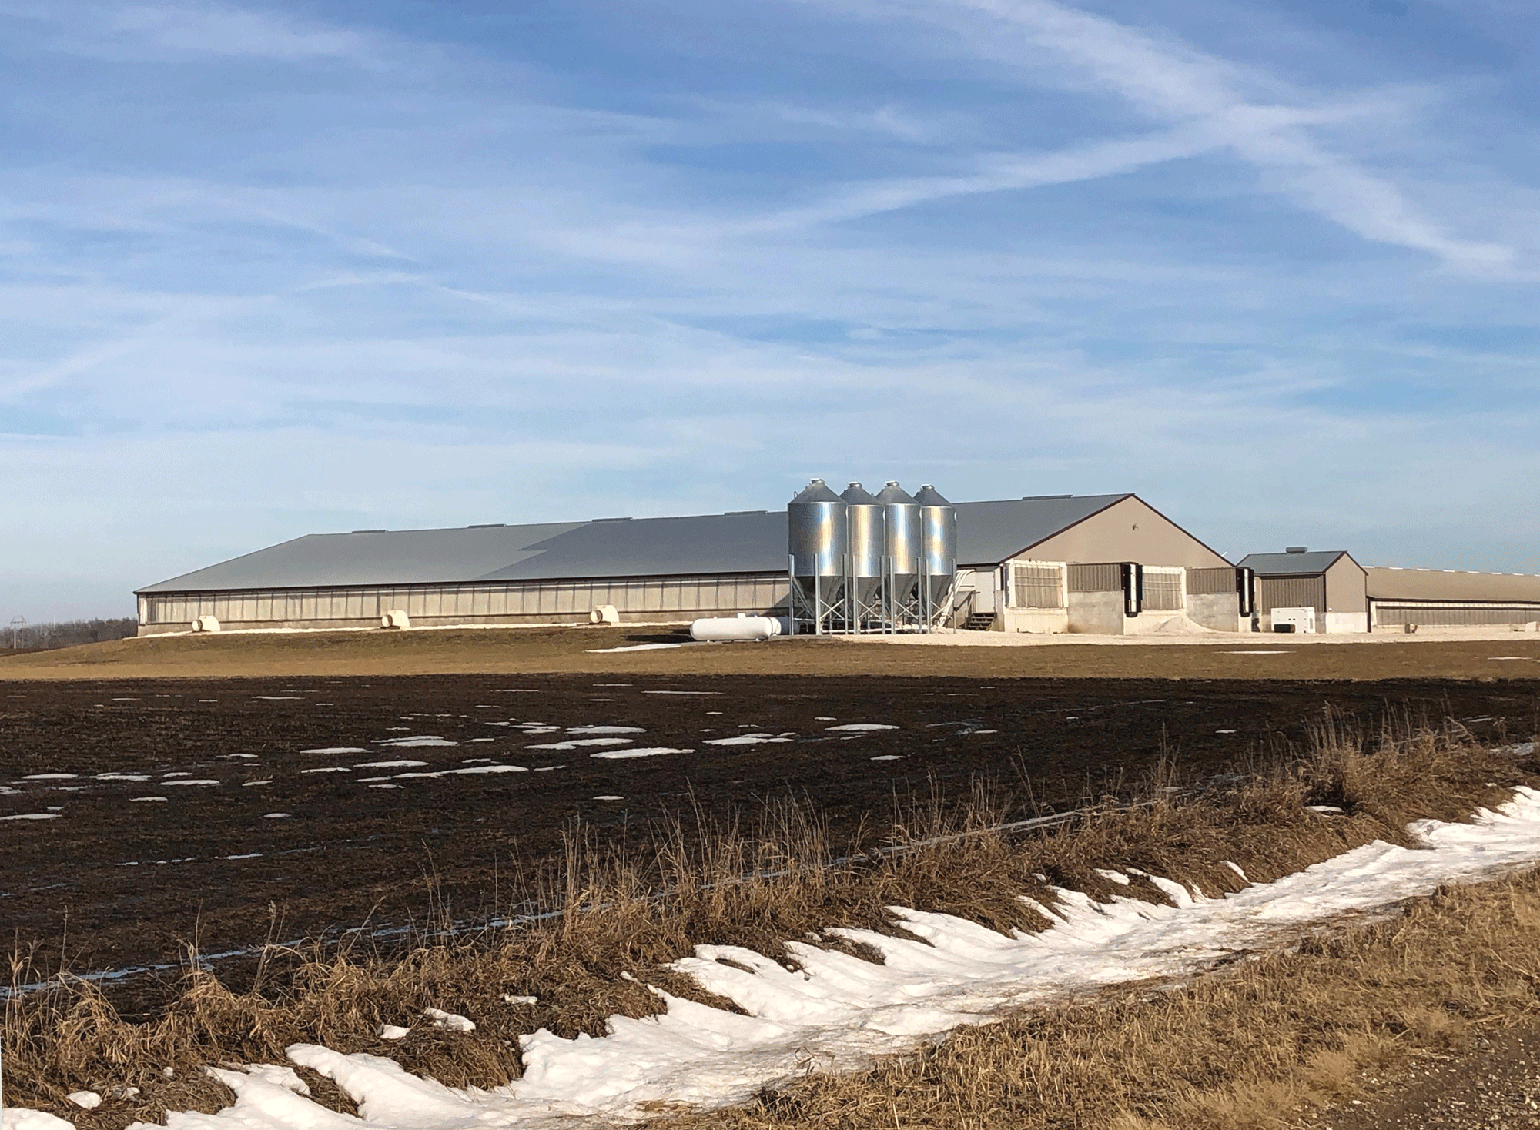 Since receiving the 2014 Environmental Steward award, Wessling Ag has welcomed daughter Jolee back to the Grand Junction, Iowa, farm and put up a new barn for 2,400 pigs.